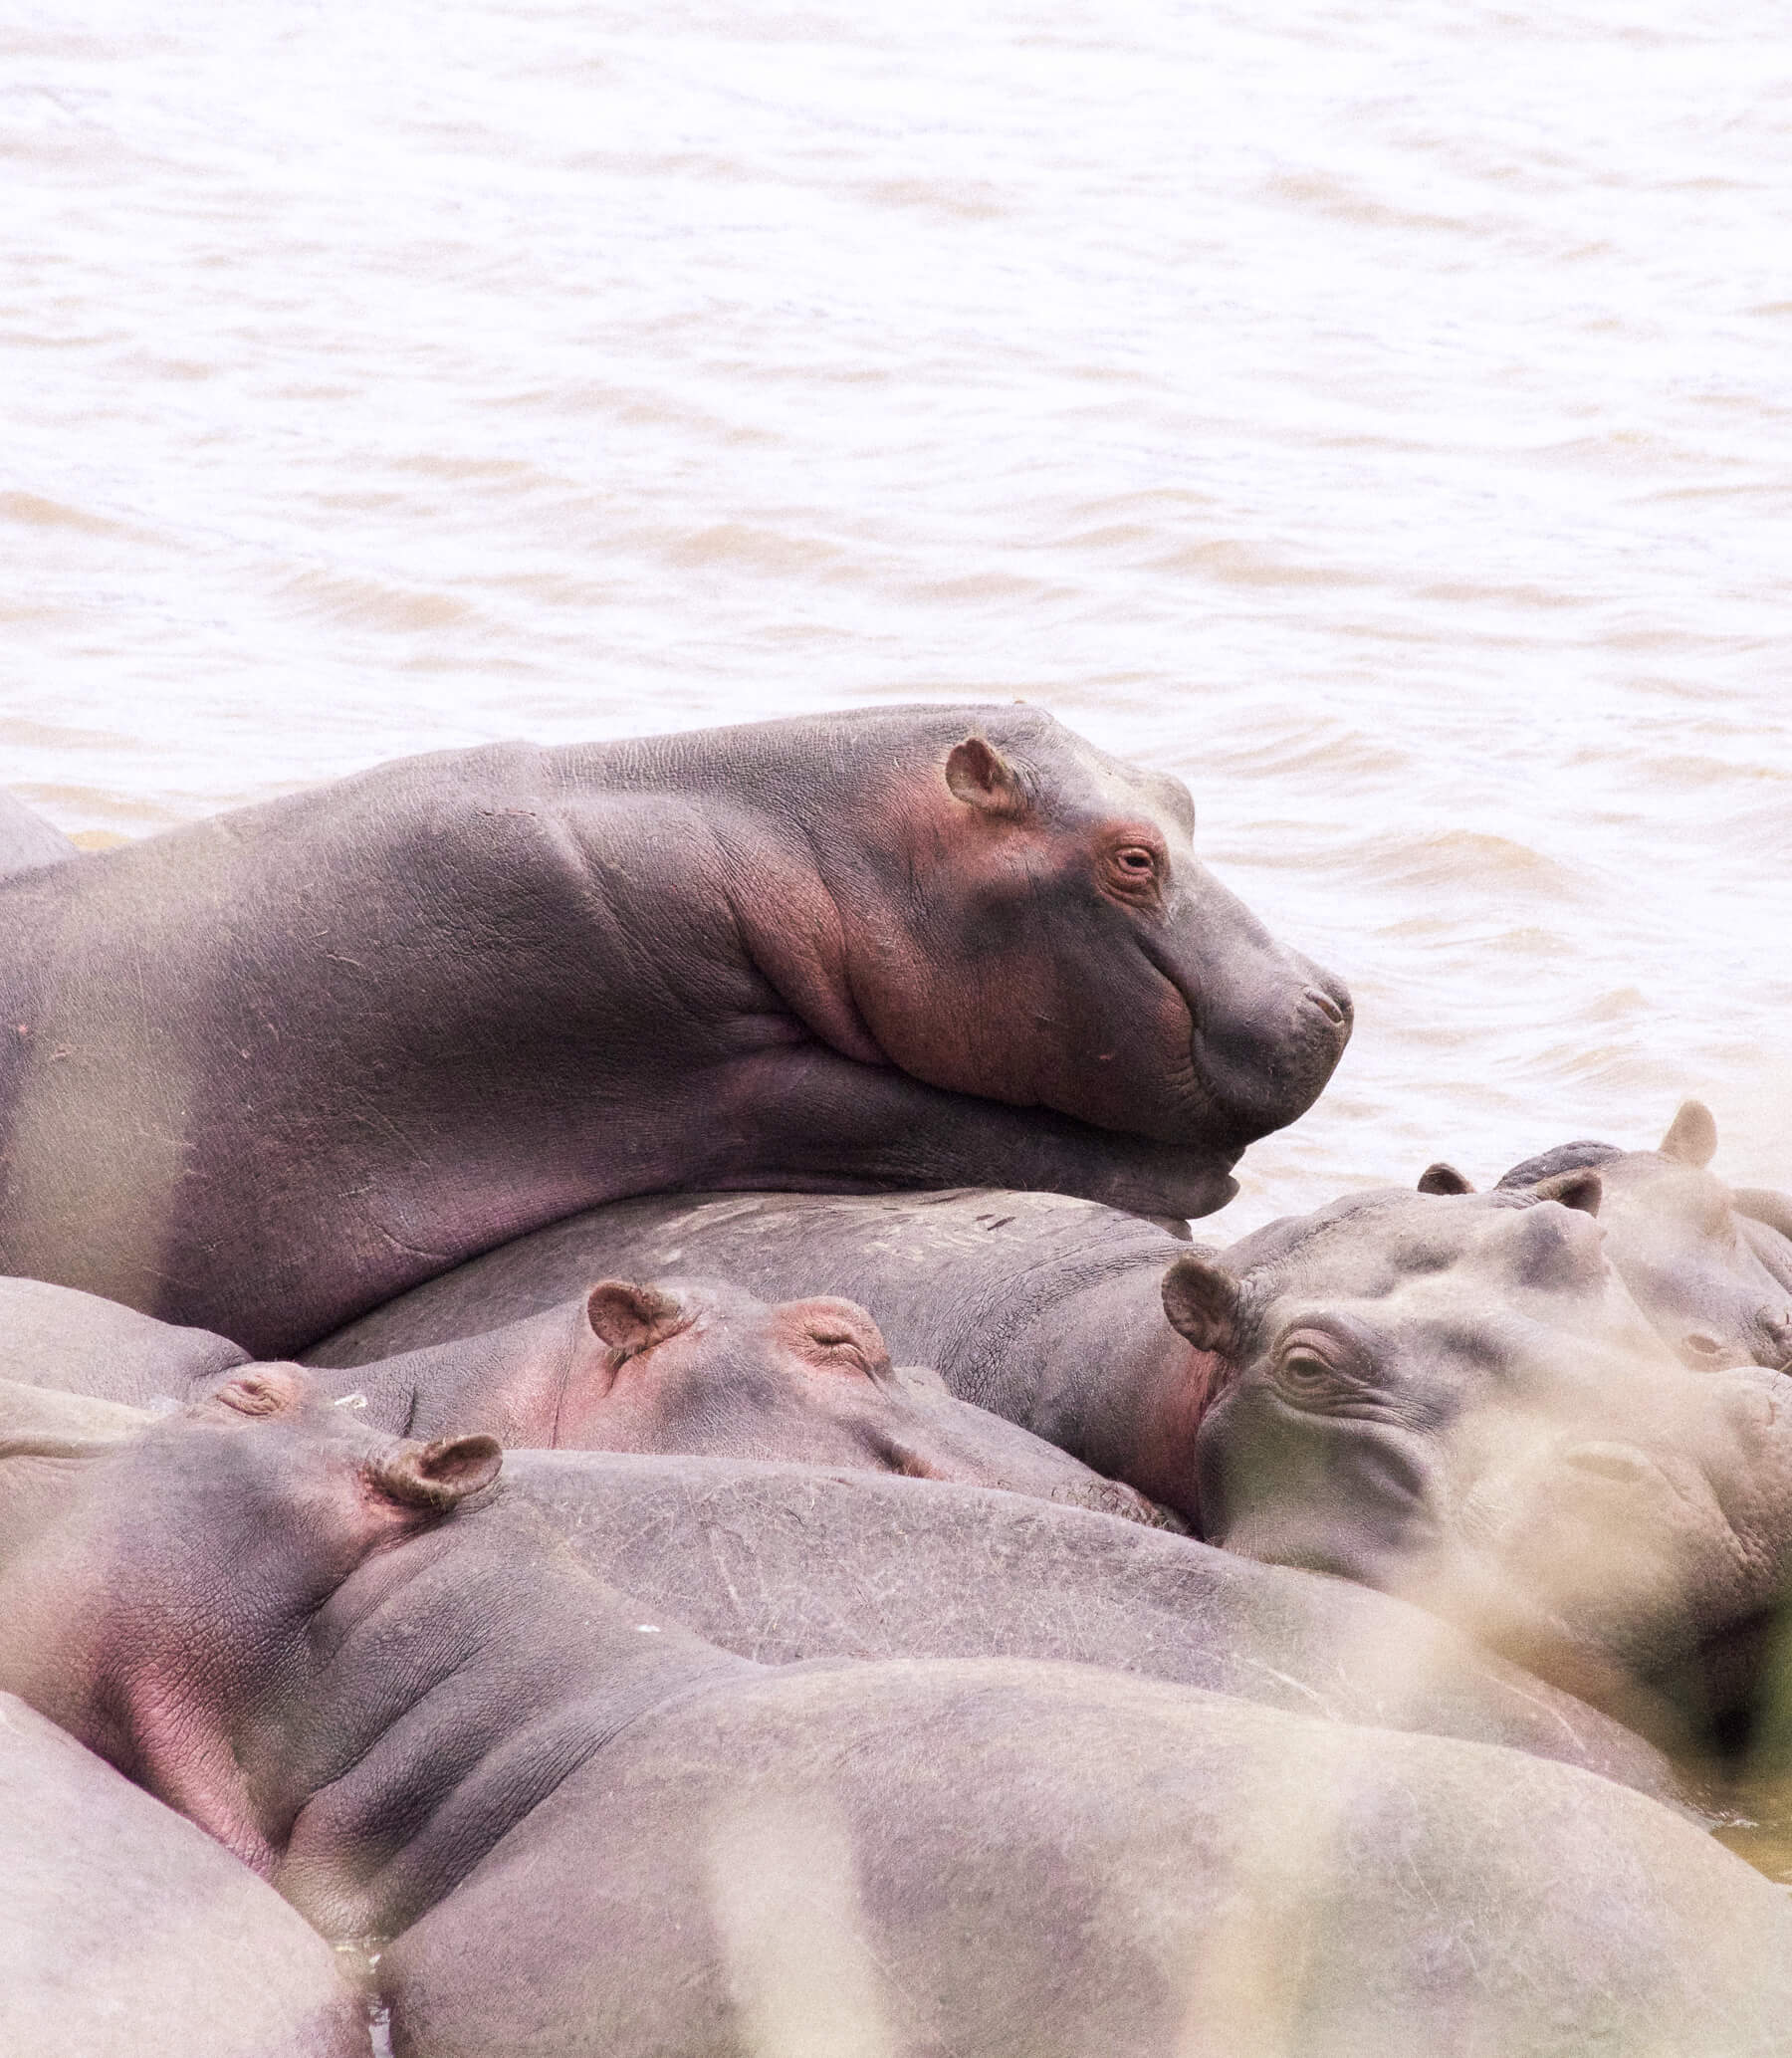 A group of hippo sleeping in the Mara River, with one sleeping on top of the others